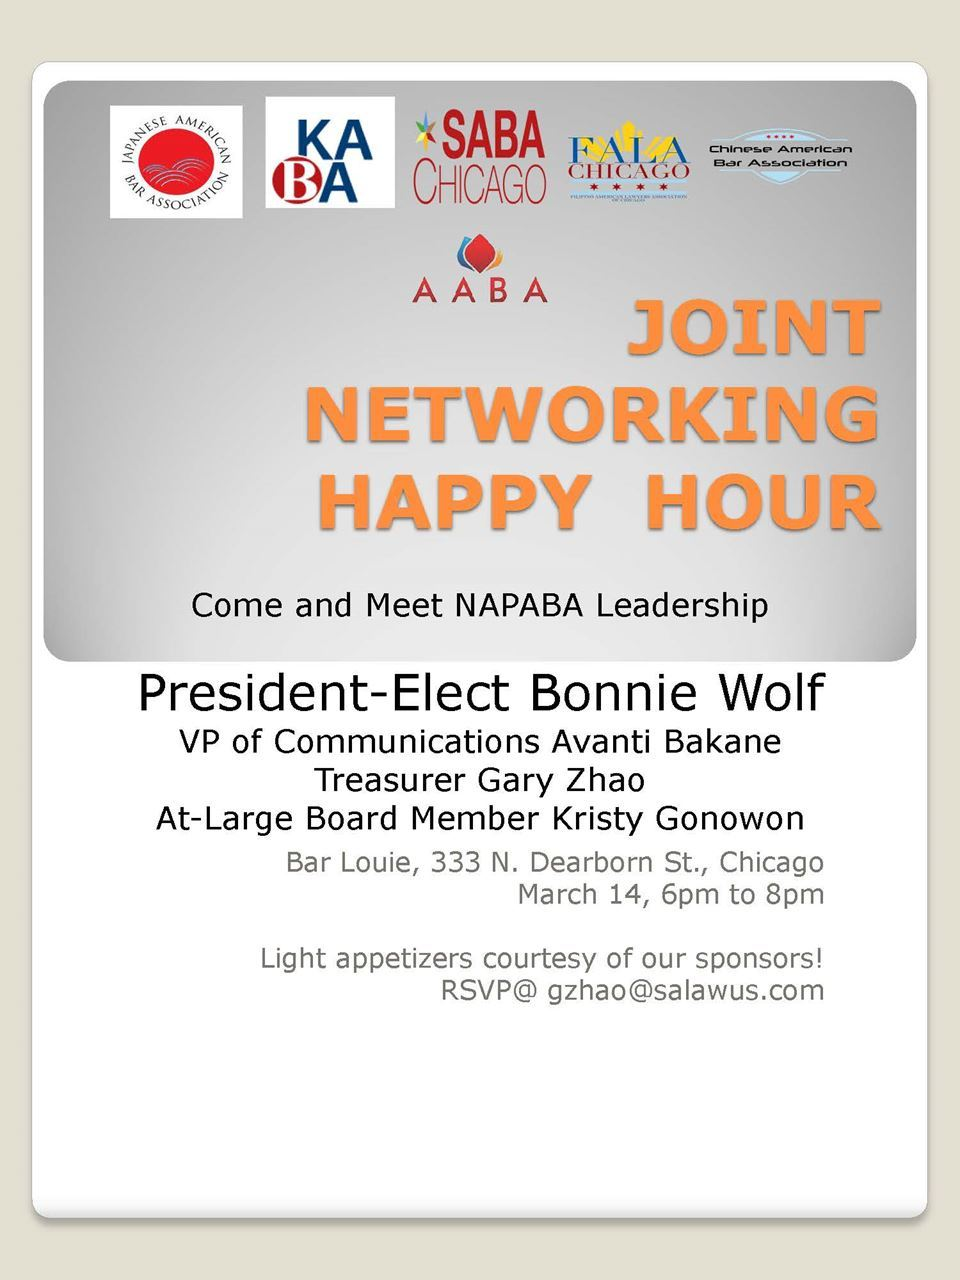 Joint Networking Happy Hour with NAPABA Leaders